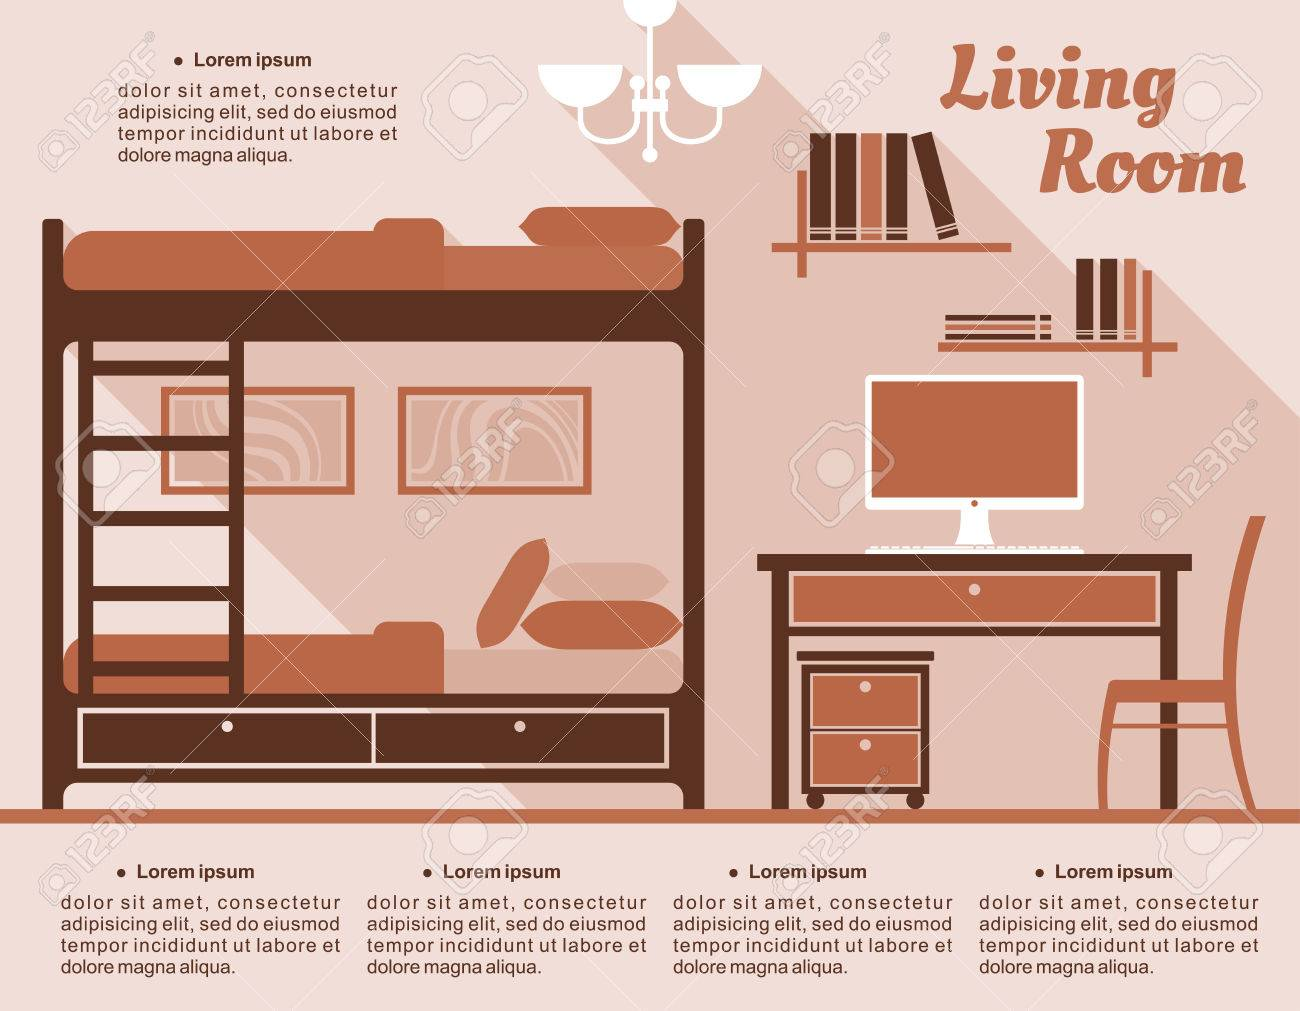 living room interior decor infographic template with a bunk bed rh 123rf com